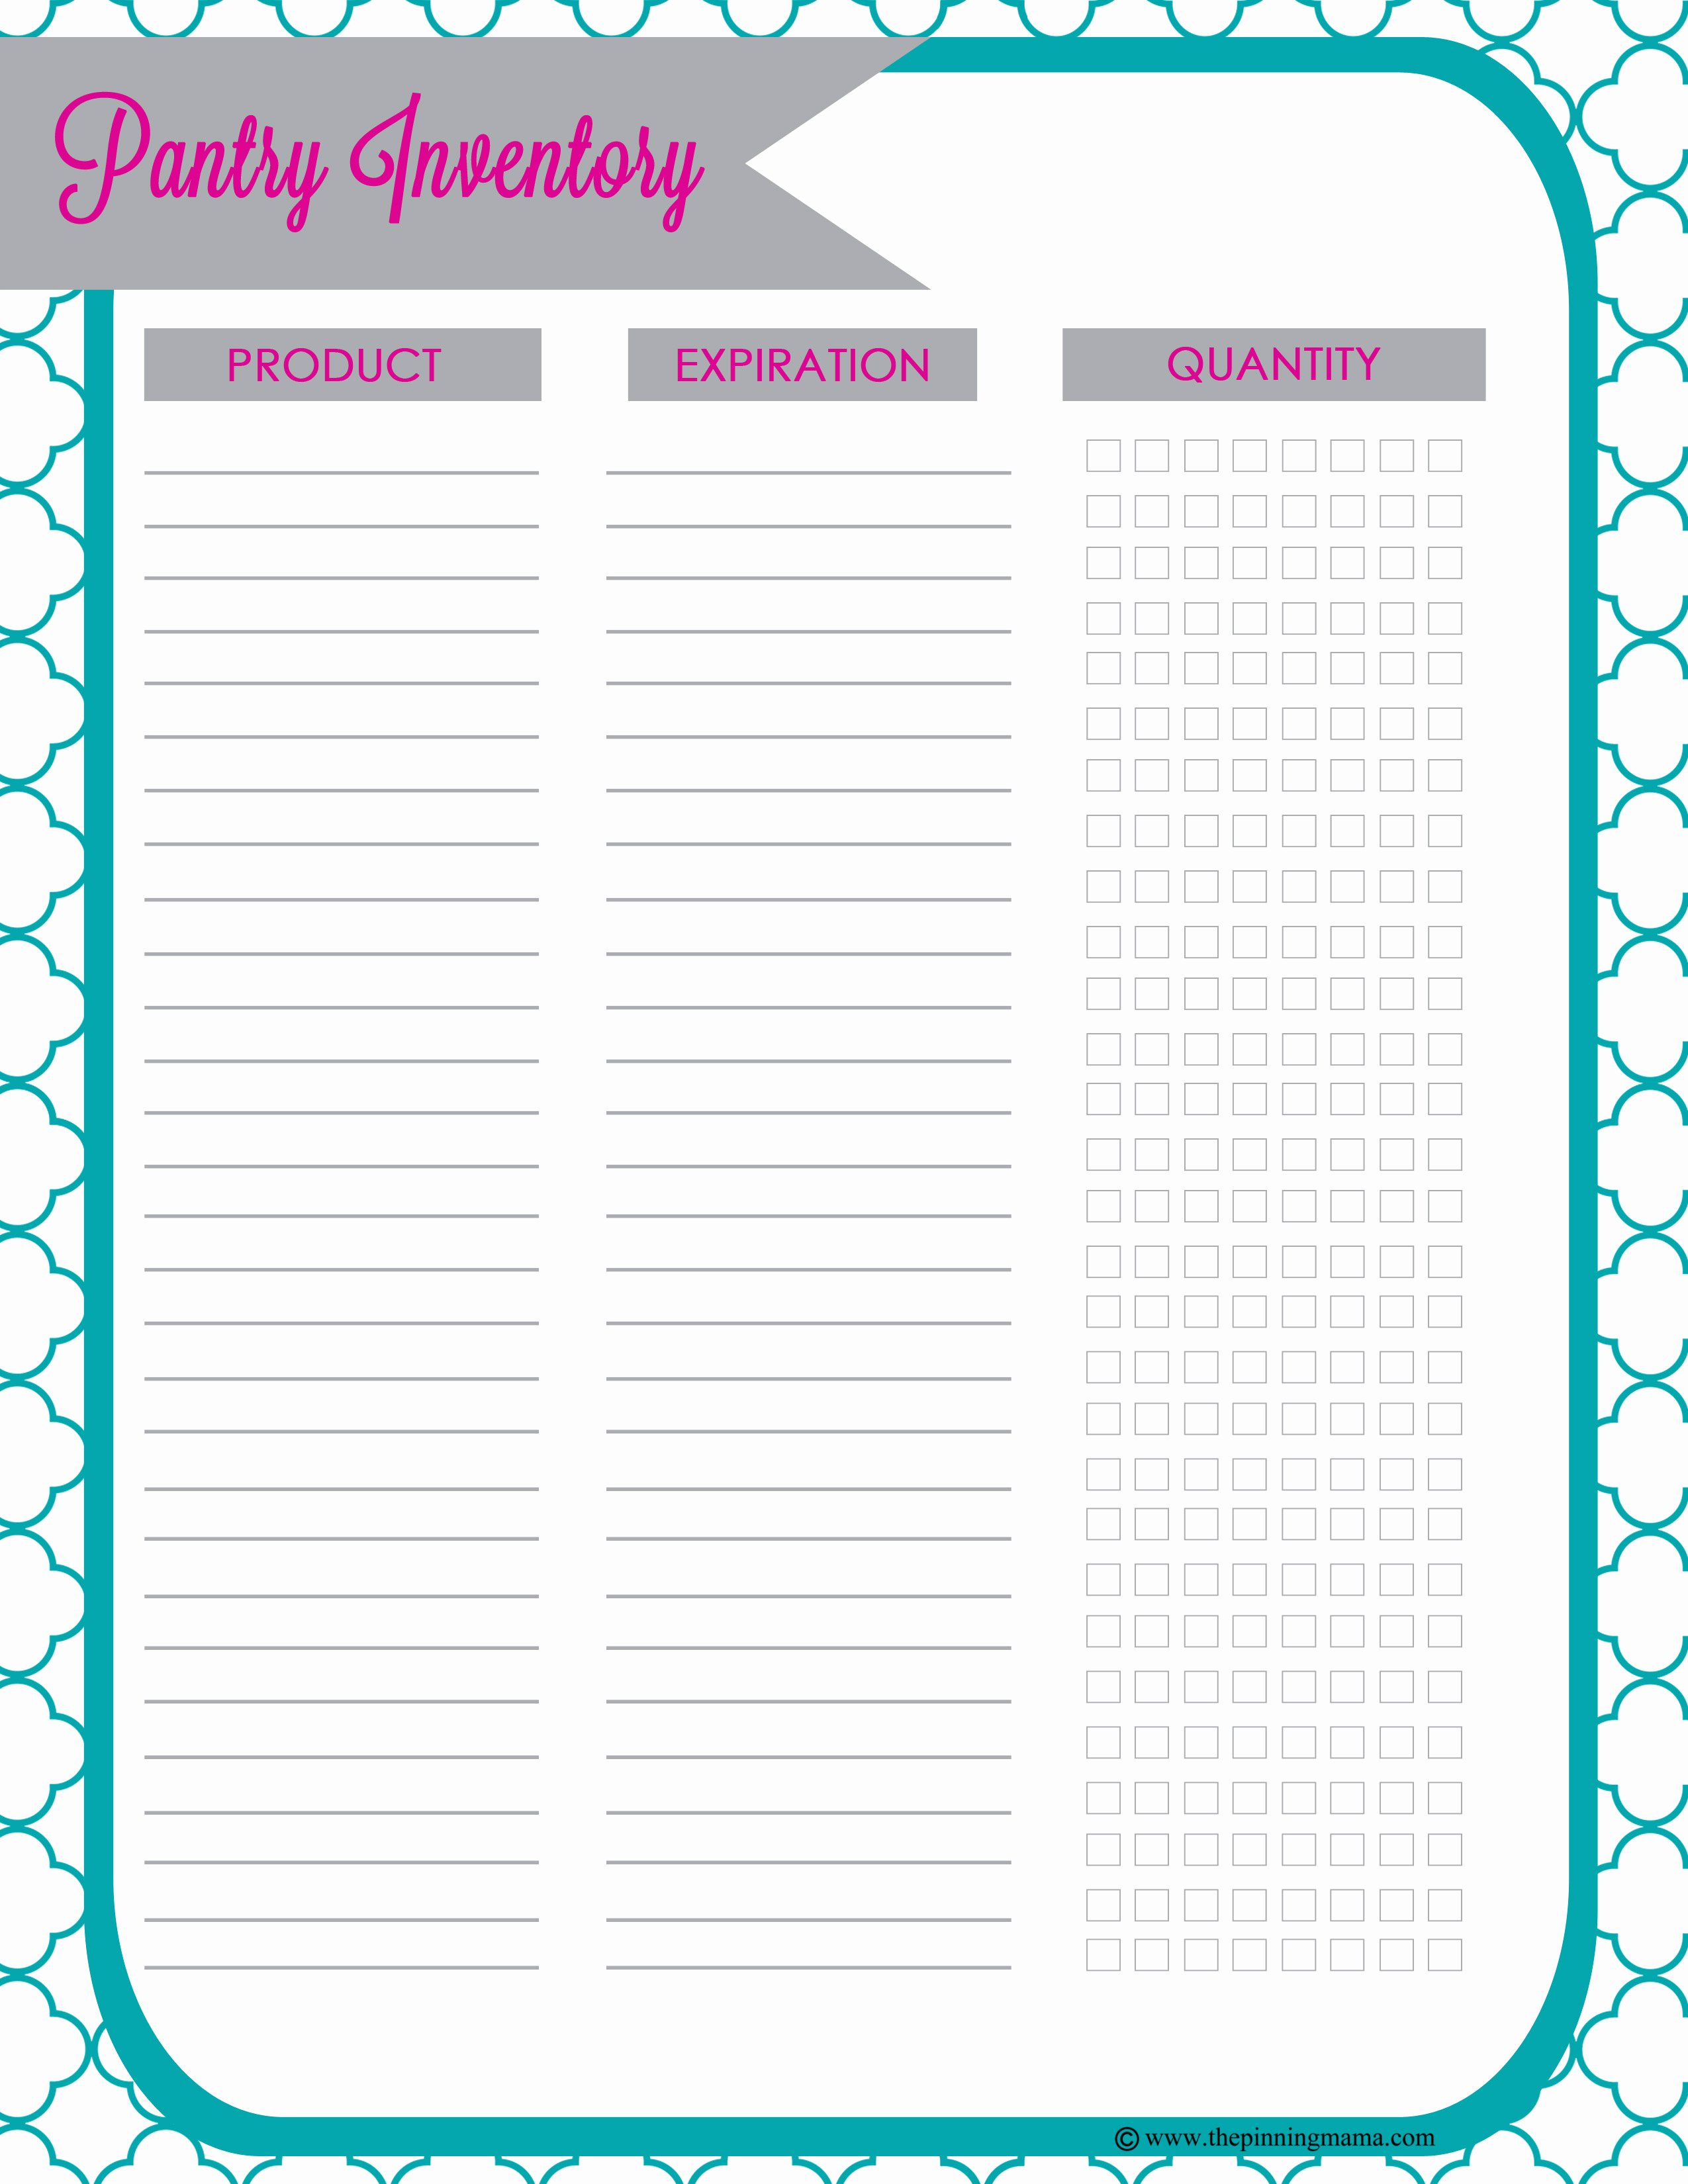 Printable Inventory List Template Elegant 25 Printables for organizing Life after Laundry